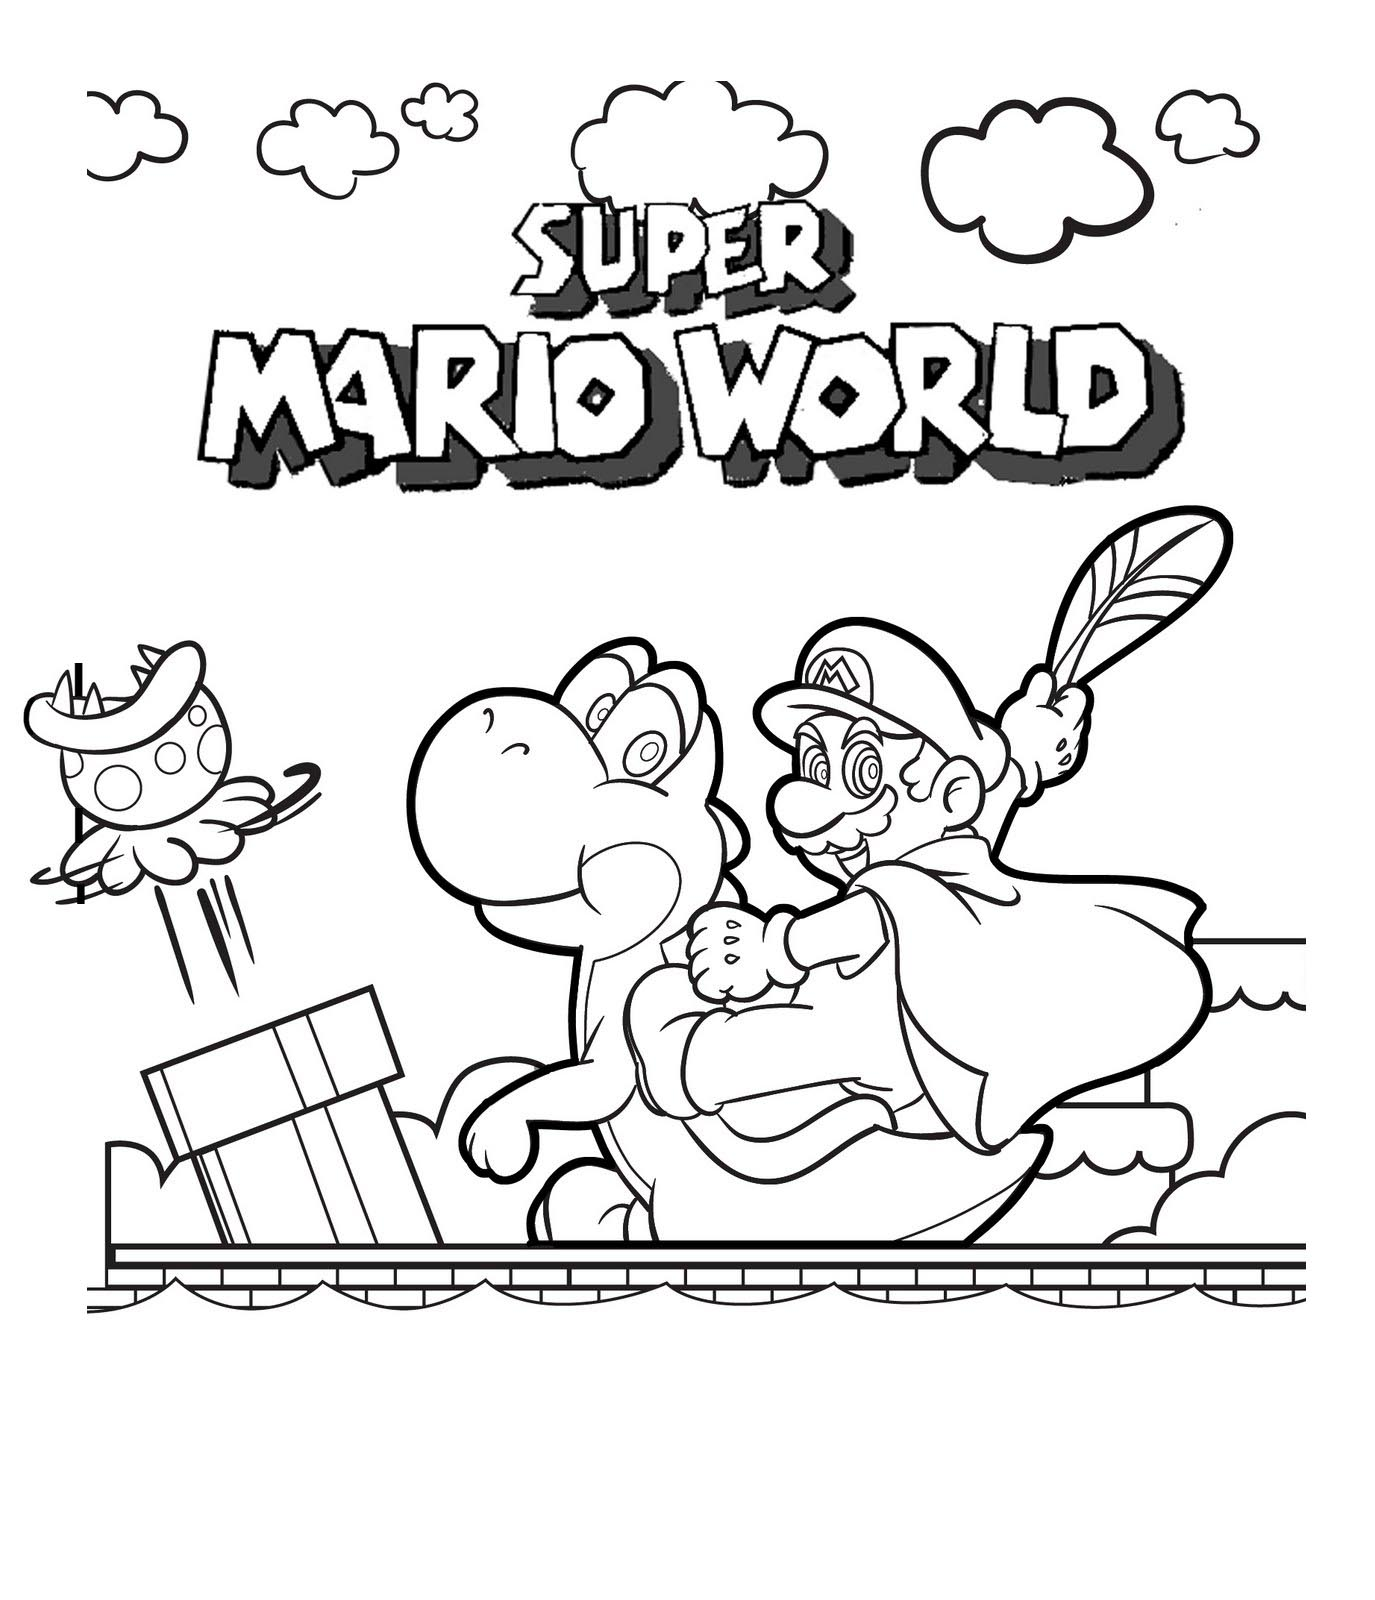 mega mario coloring pages - photo#8